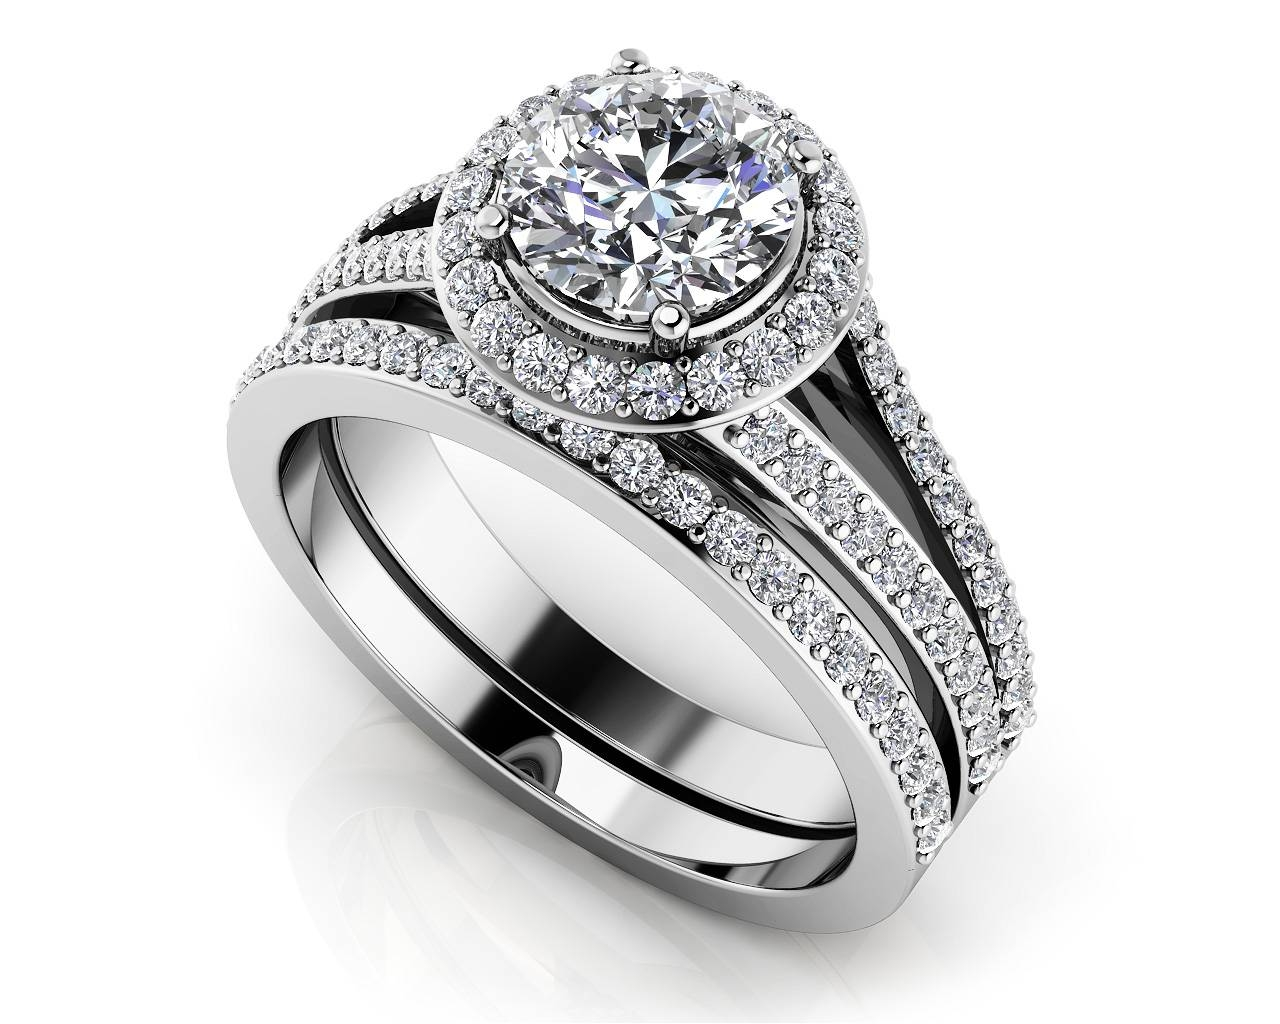 Customize Your Wedding Set & Matching Diamond Bridal Set With Regard To Most Current Anniversary Rings Sets (View 5 of 25)